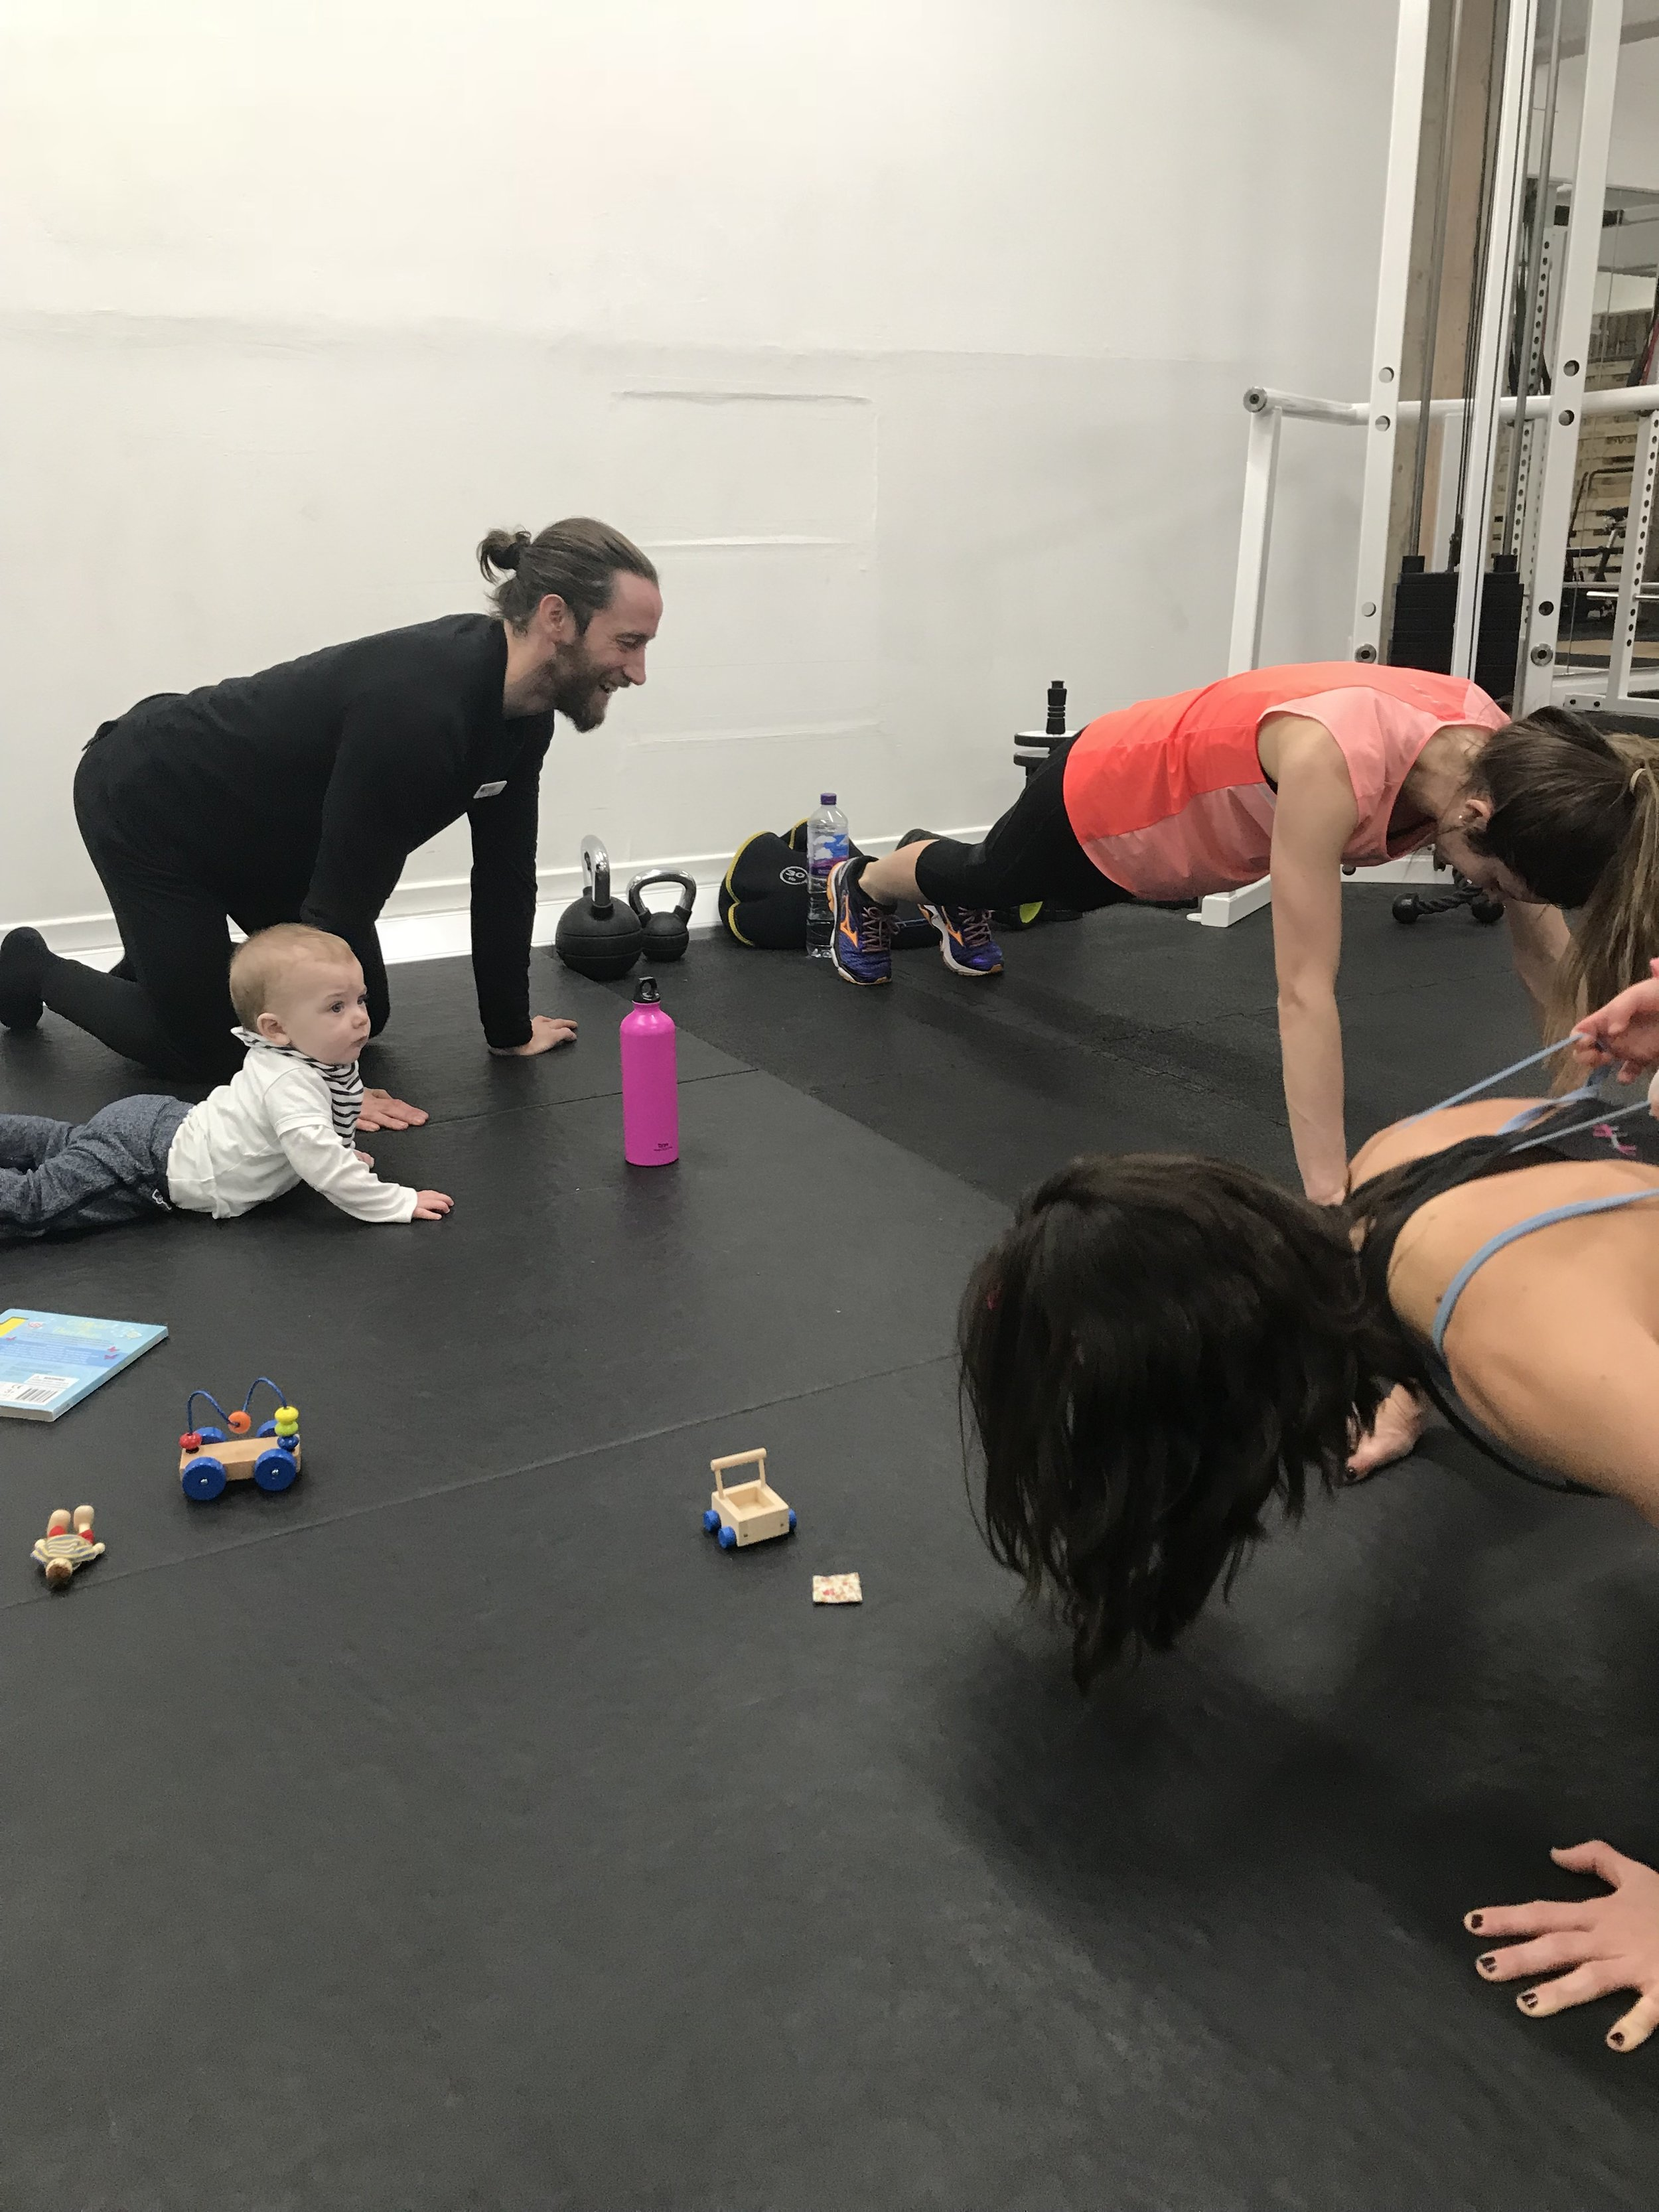 Stanza Mums - We're so PROUD of our small group training class for mothers and little ones! All babies and toddlers all welcome!We're passionate about enabling everyone to train. The class is in a controlled space where we can interact with children whilst still getting a good workout in. Focusing on increasing strength and improving body composition post pregnancy.